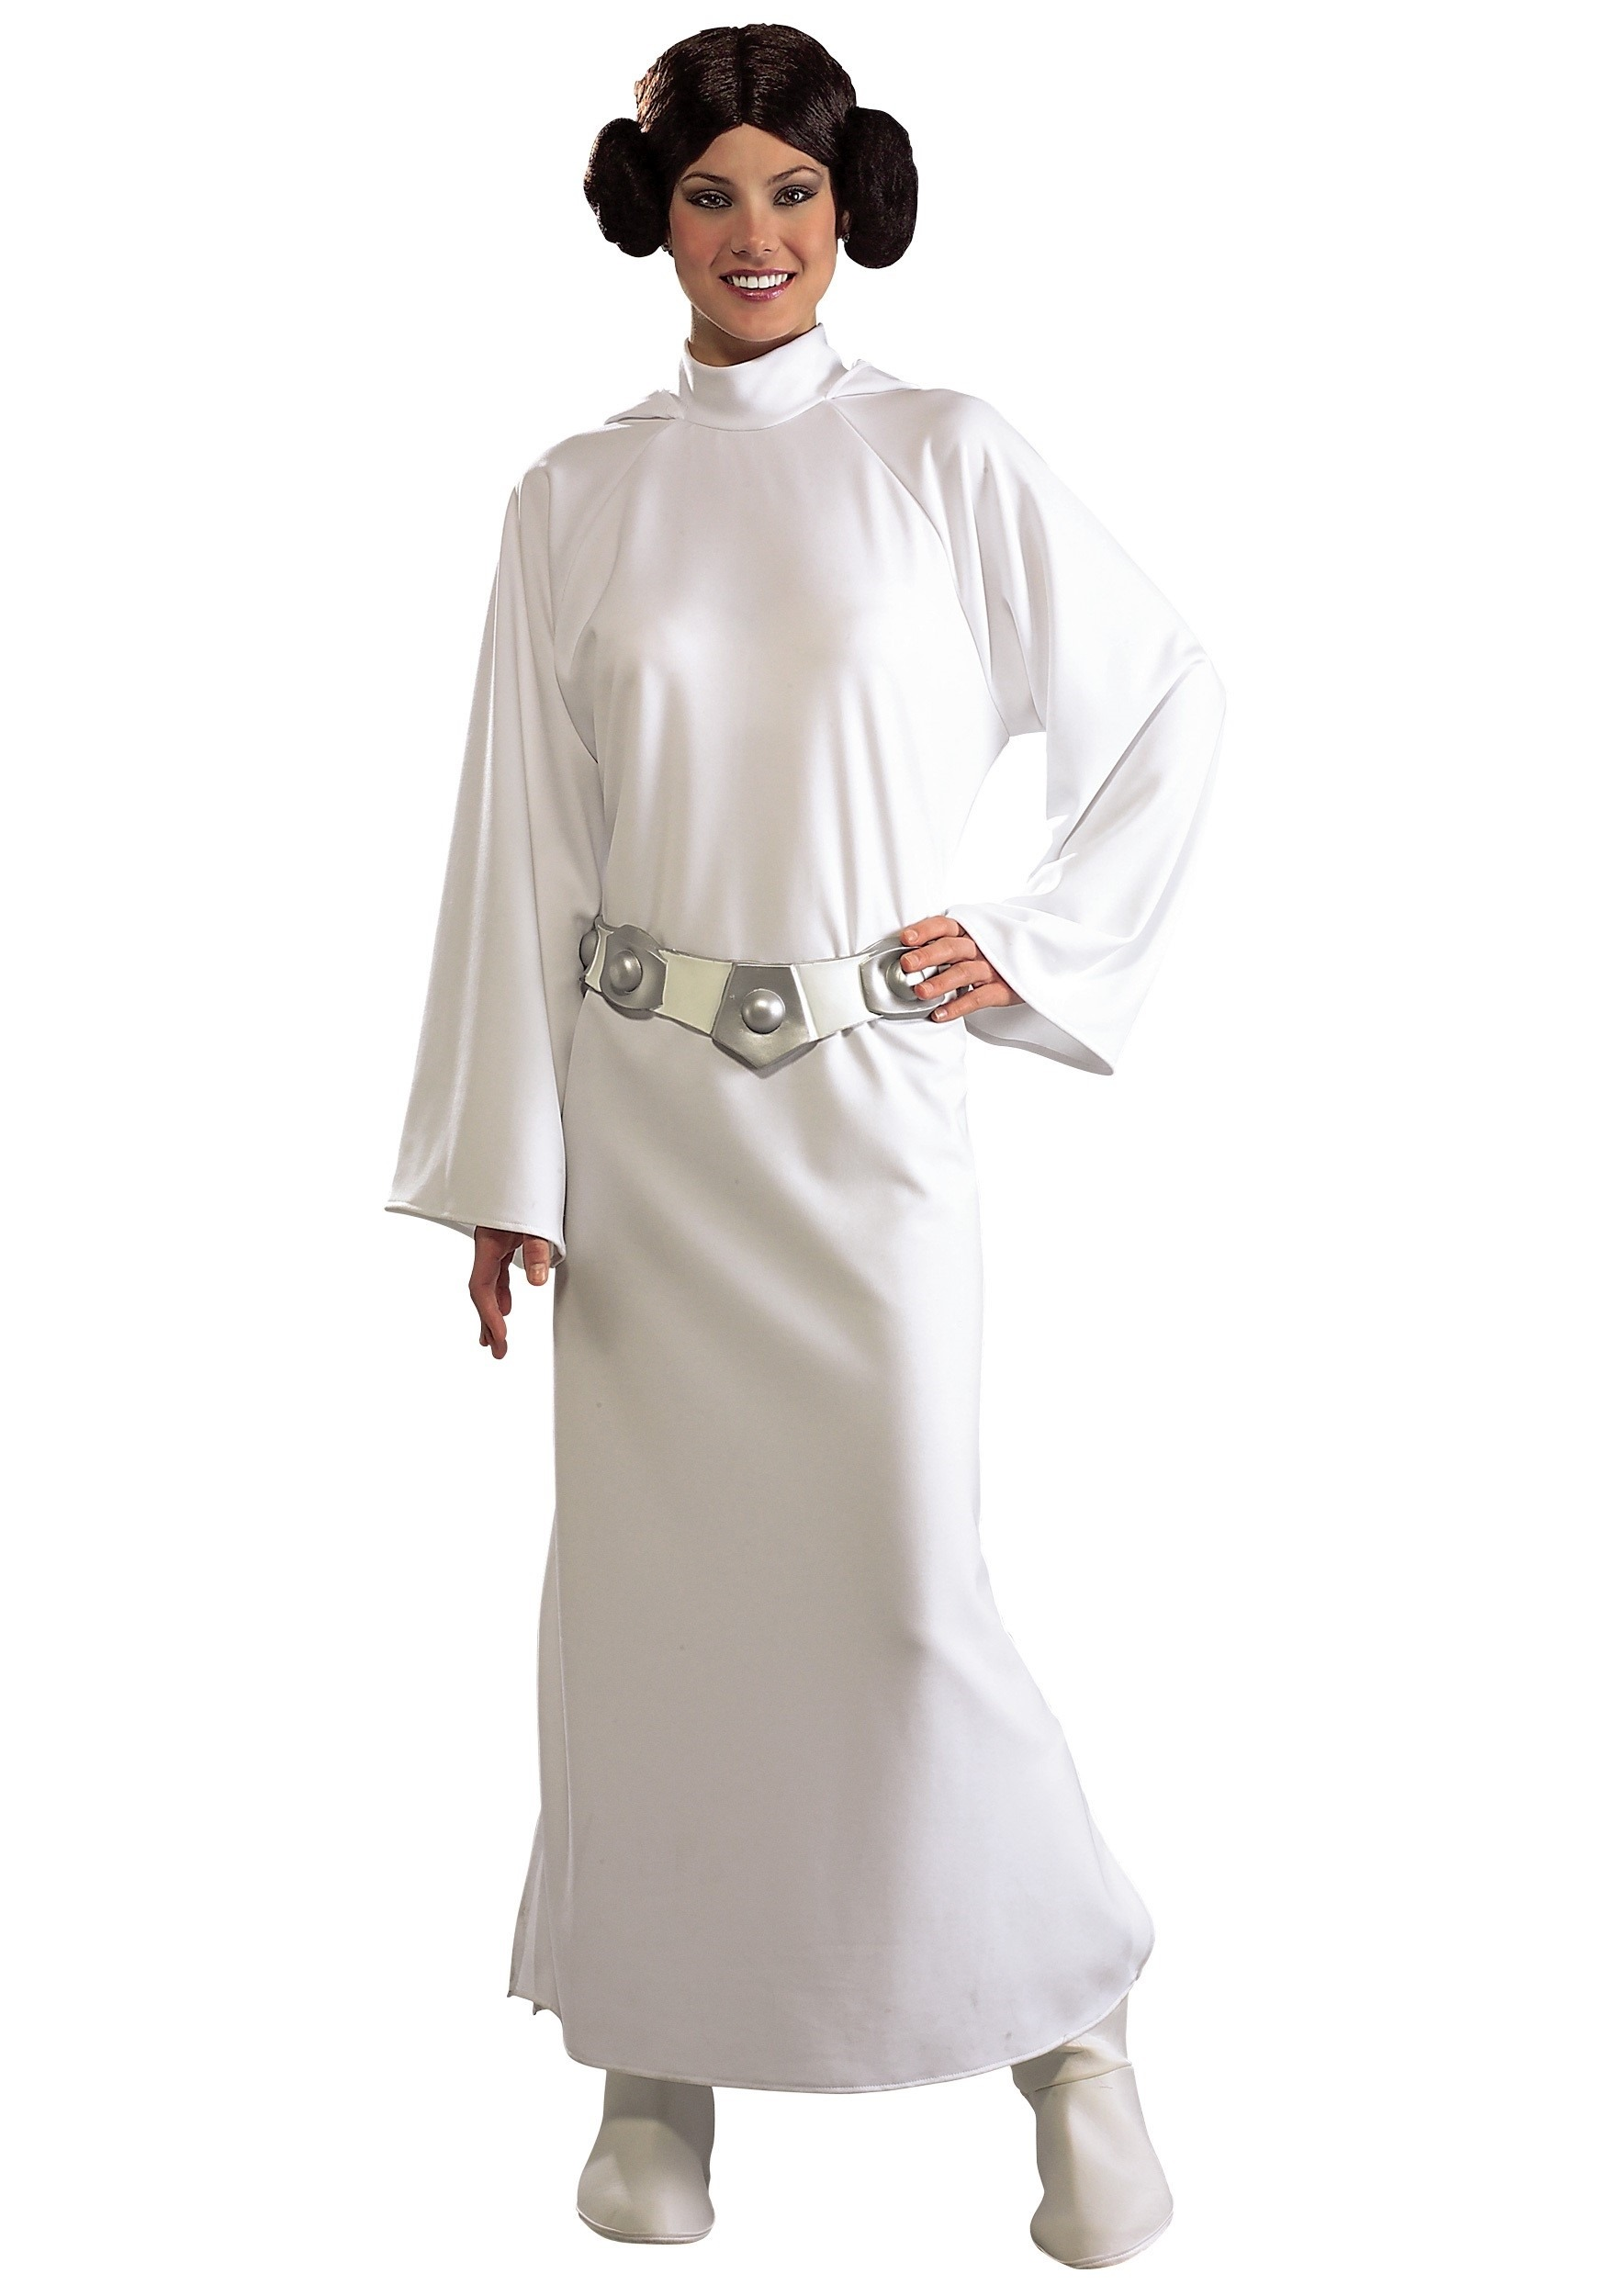 Adult Star Wars Costumes